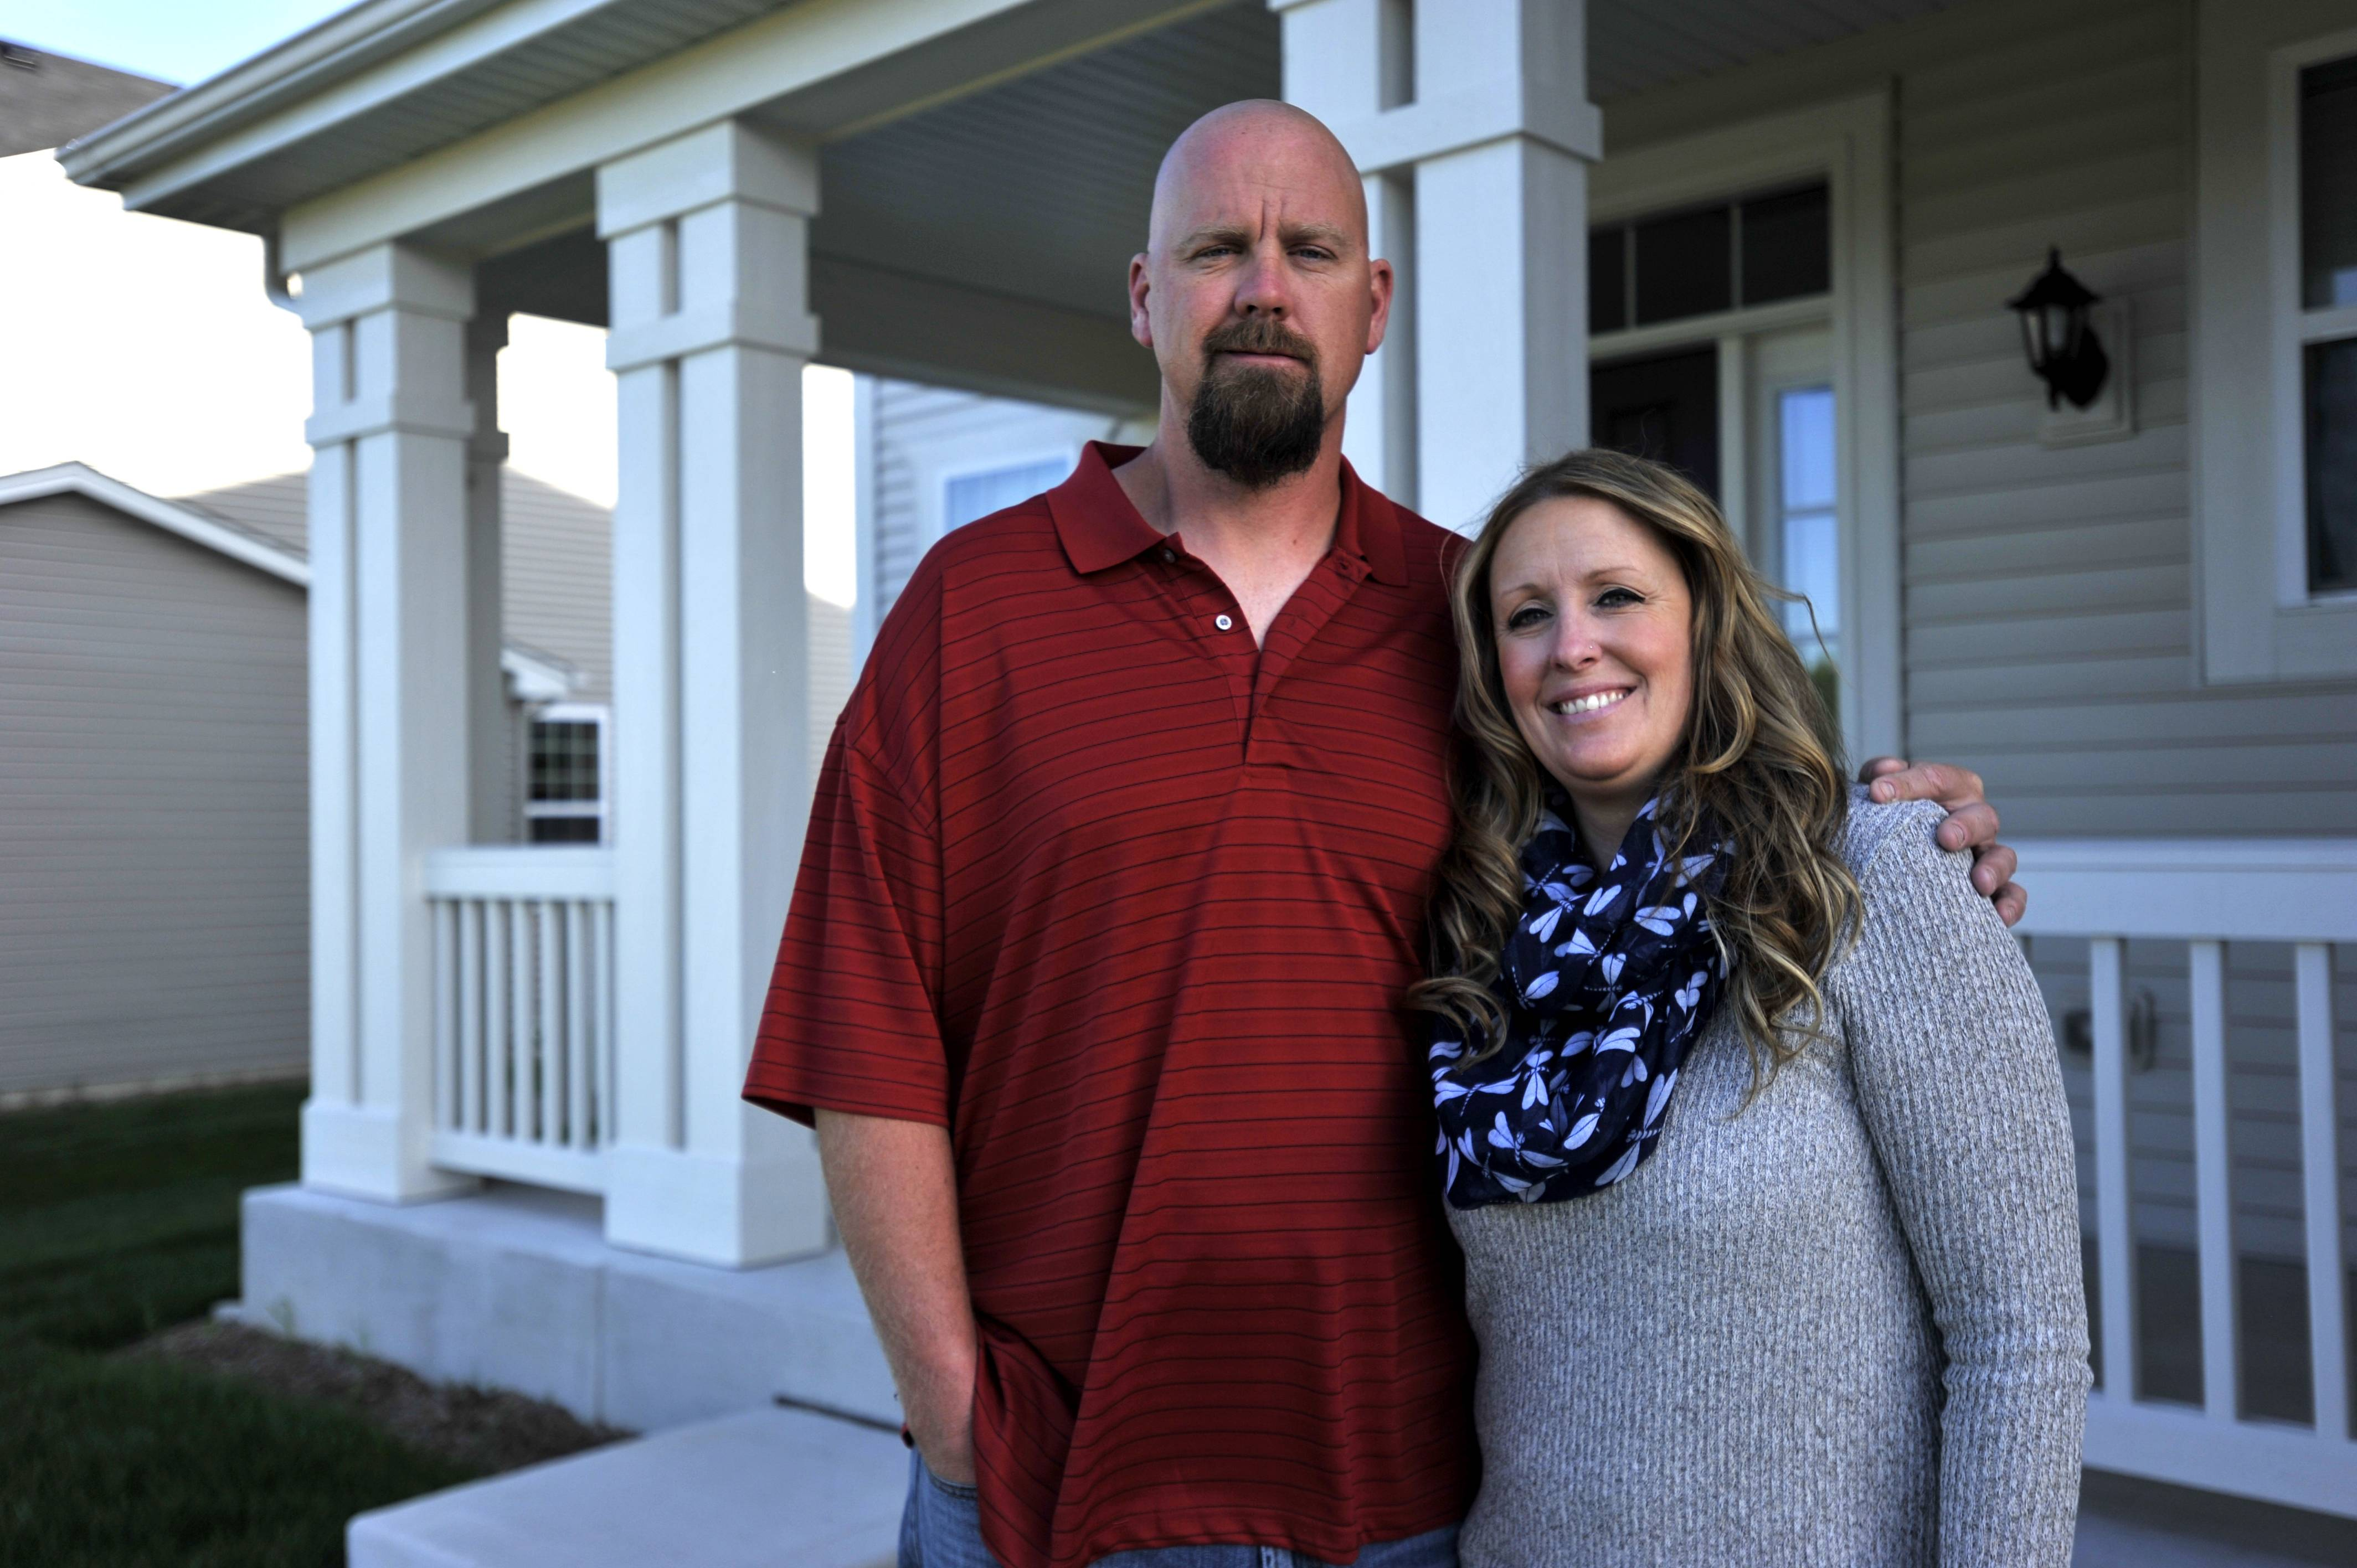 William and Jessica Roche bought their new home in Pingree Grove at the end of April, around the time of their wedding. Buying a move-in ready house also helped as Jessica was just completing her nursing degree.